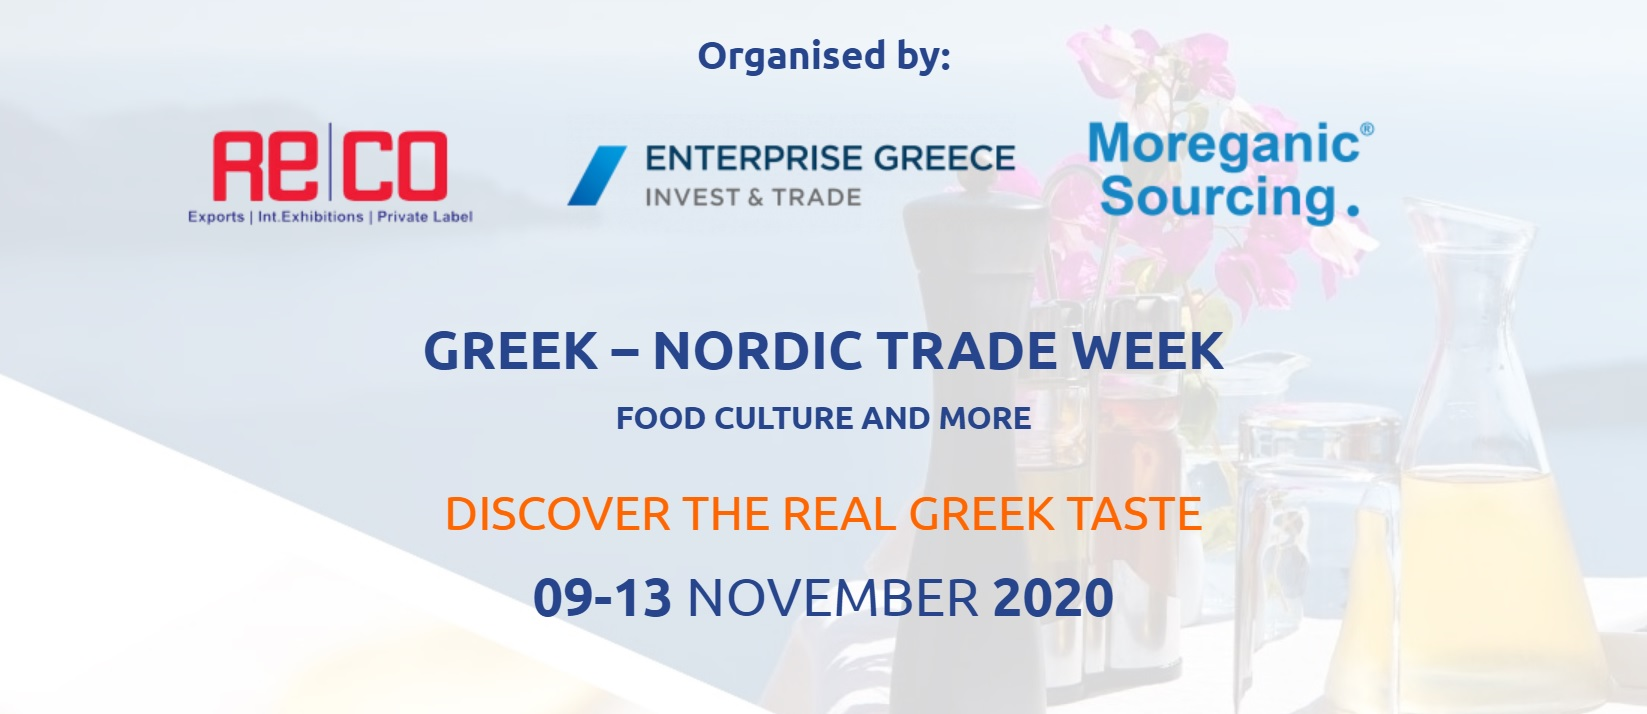 GREEK NORDIC trade week